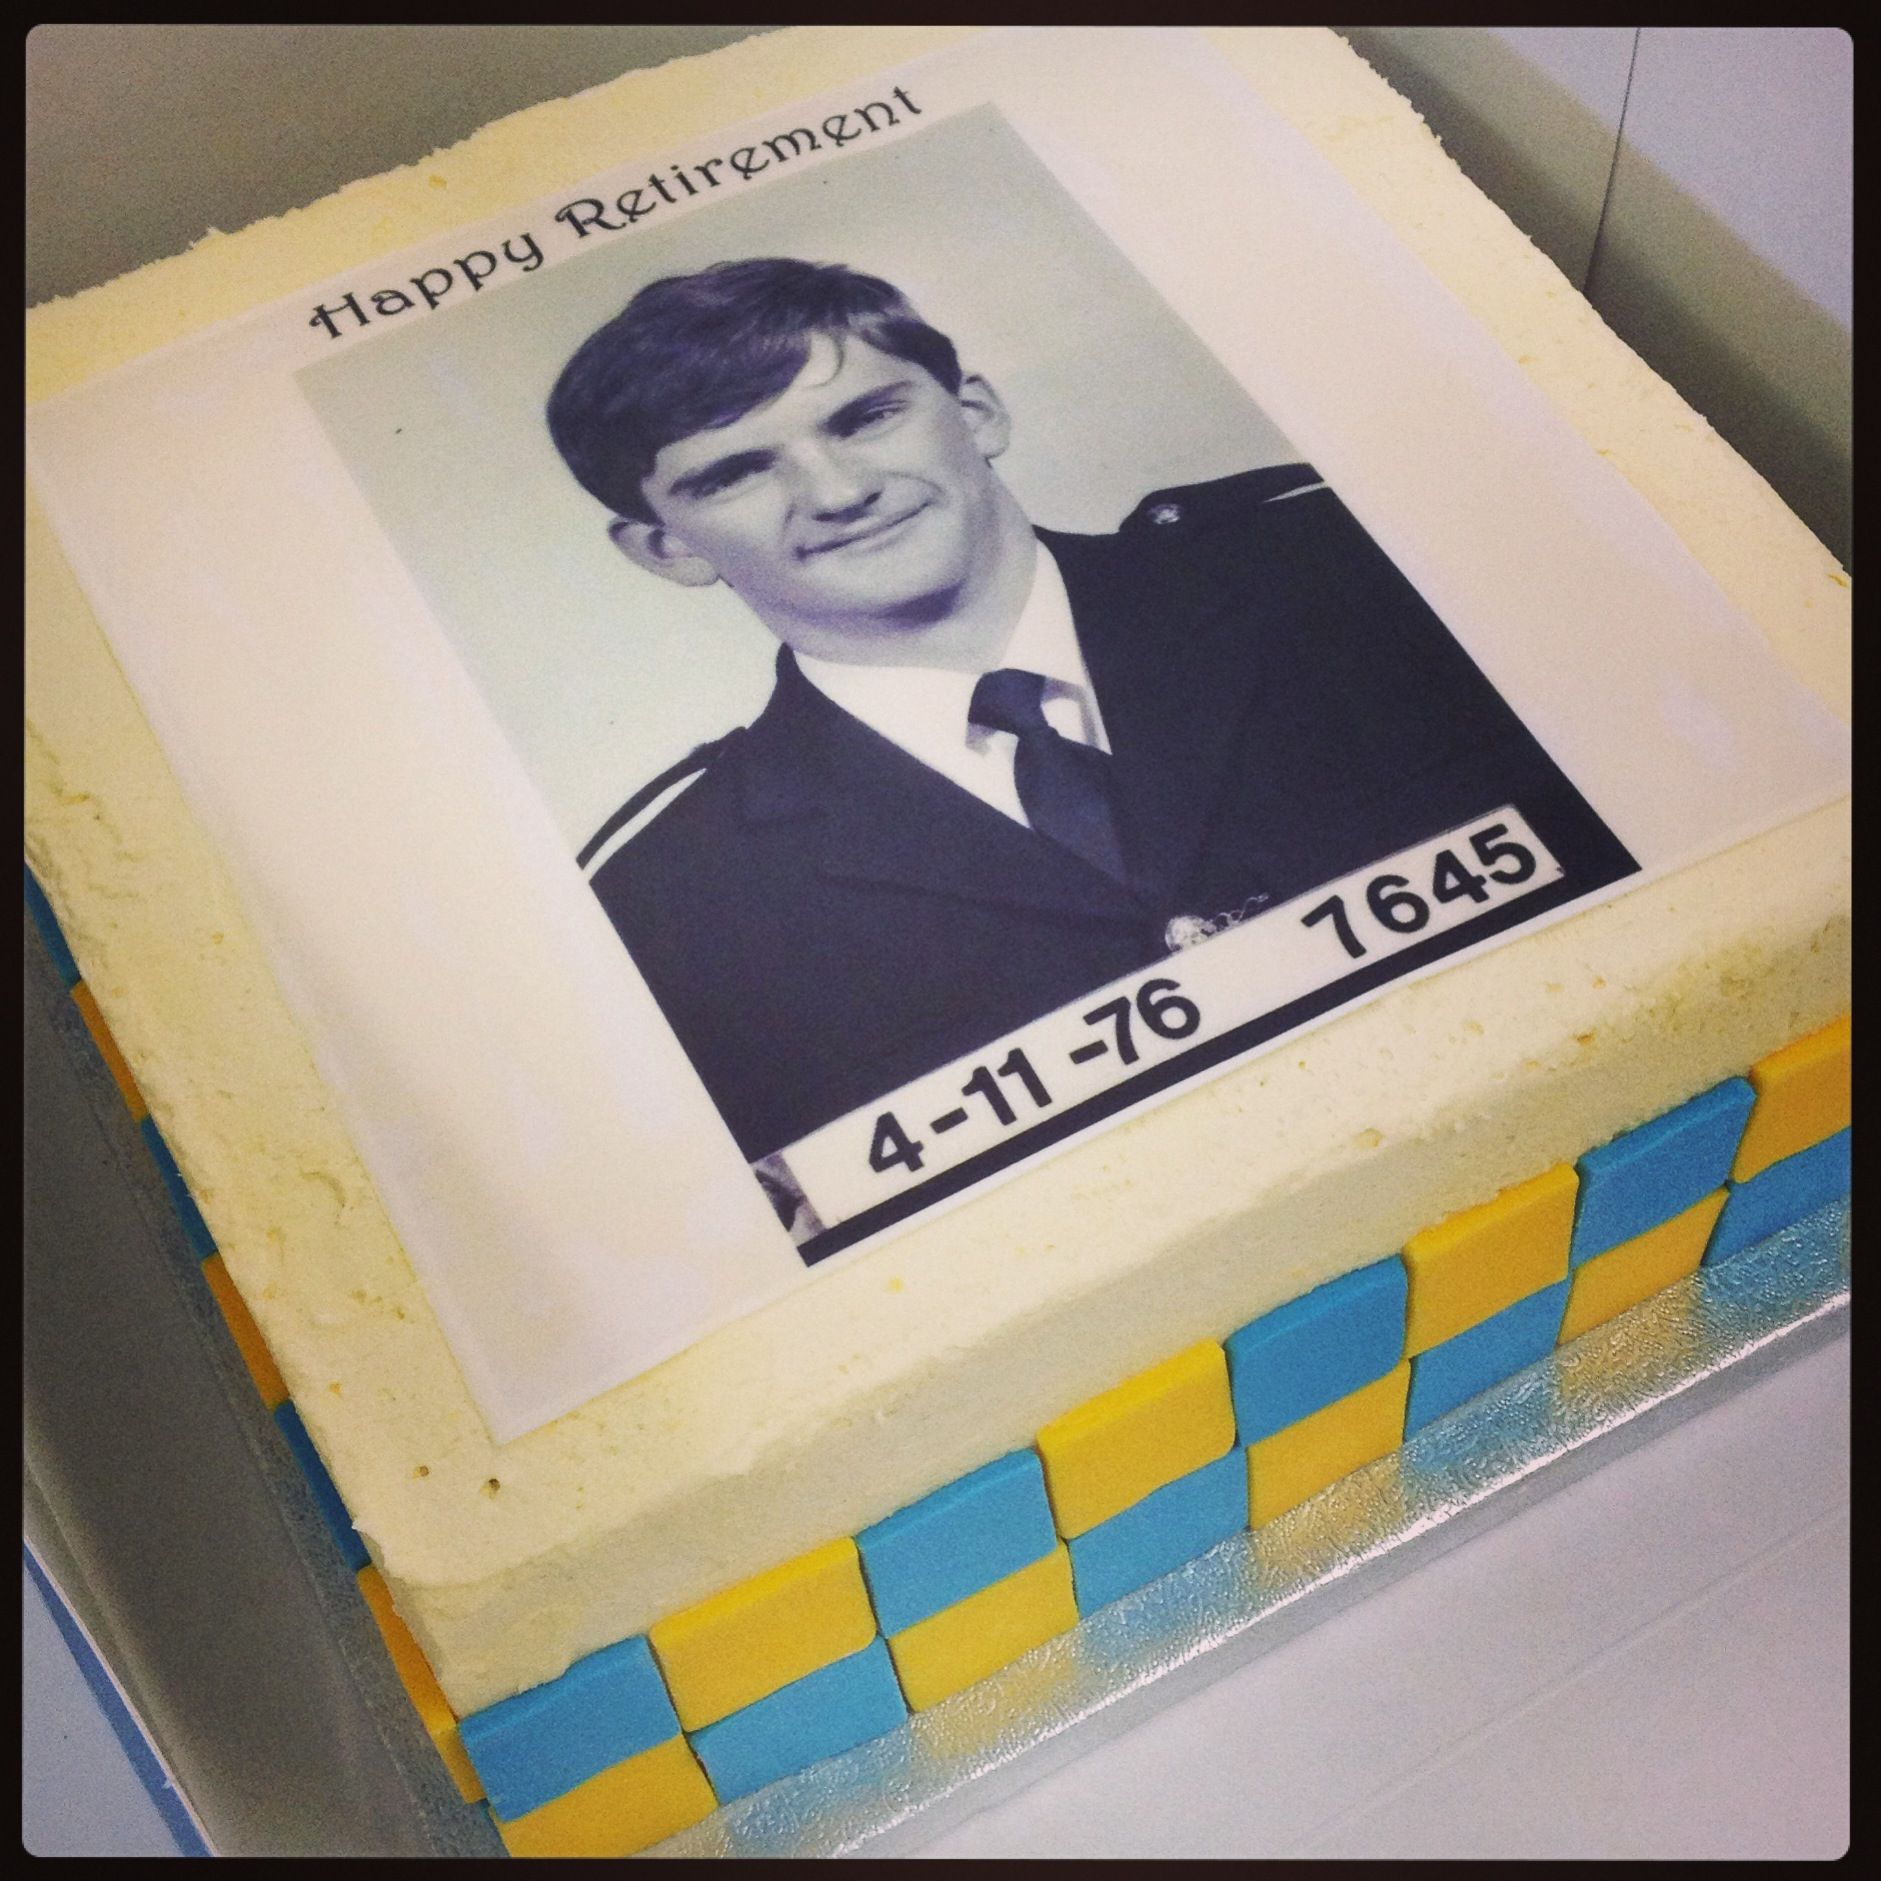 Police Officer Retirement Cake Party/Event Ideas Pinterest